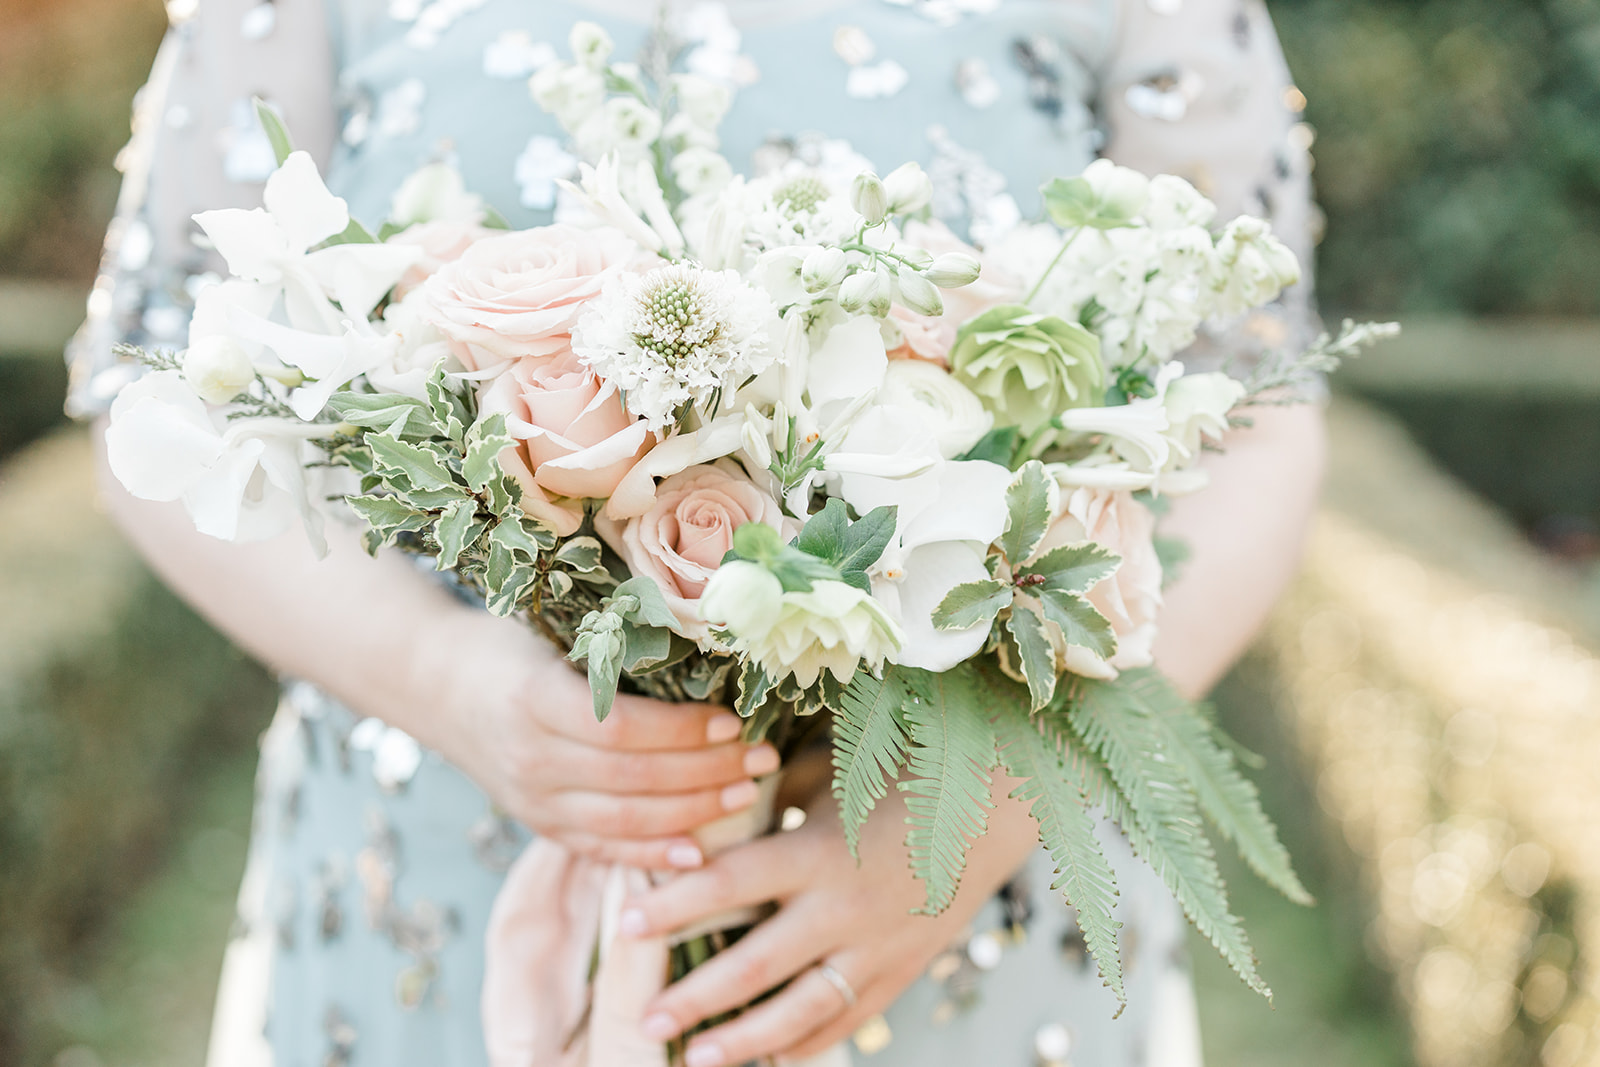 Wedding bouquet with blush roses Bride wearing a light blue wedding dress - Kelsie Scully Photography